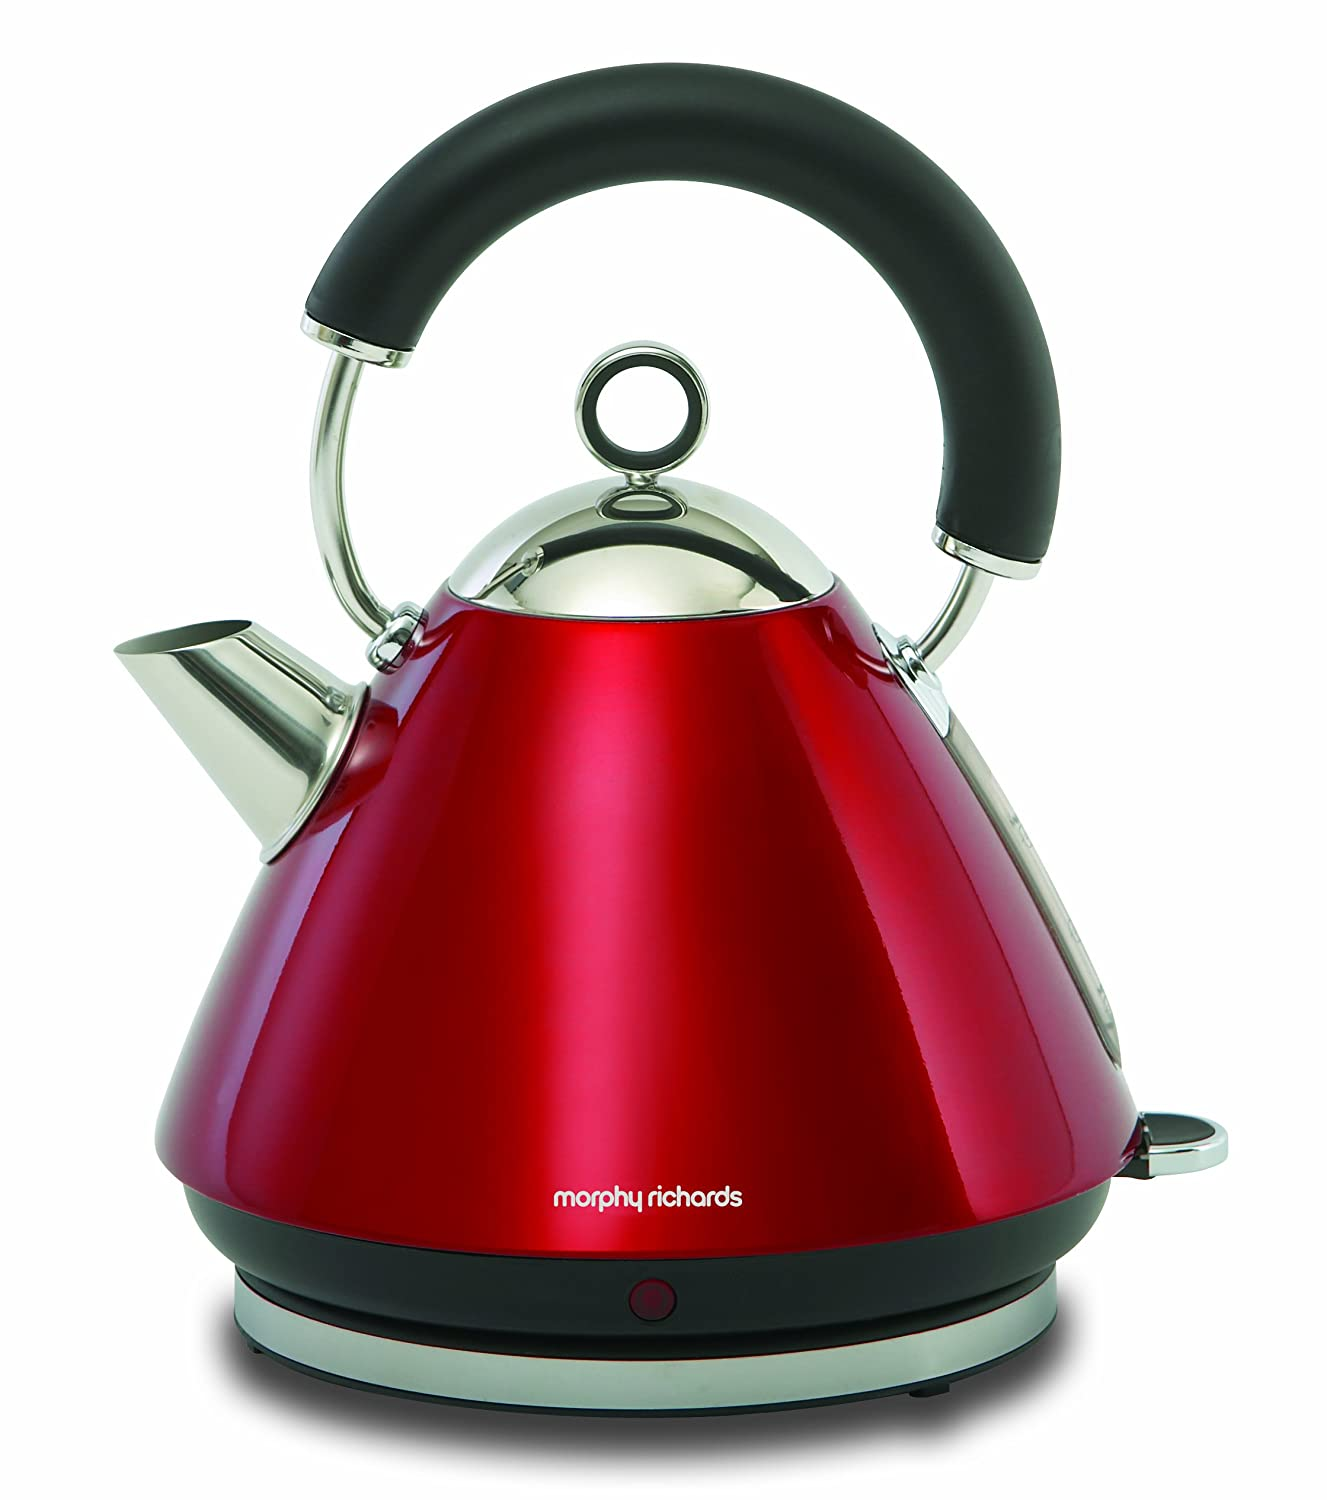 5l accents range only electricals co uk small kitchen appliances - Morphy Richards Accents 43775 Pyramid Kettle Amazon Co Uk Kitchen Home